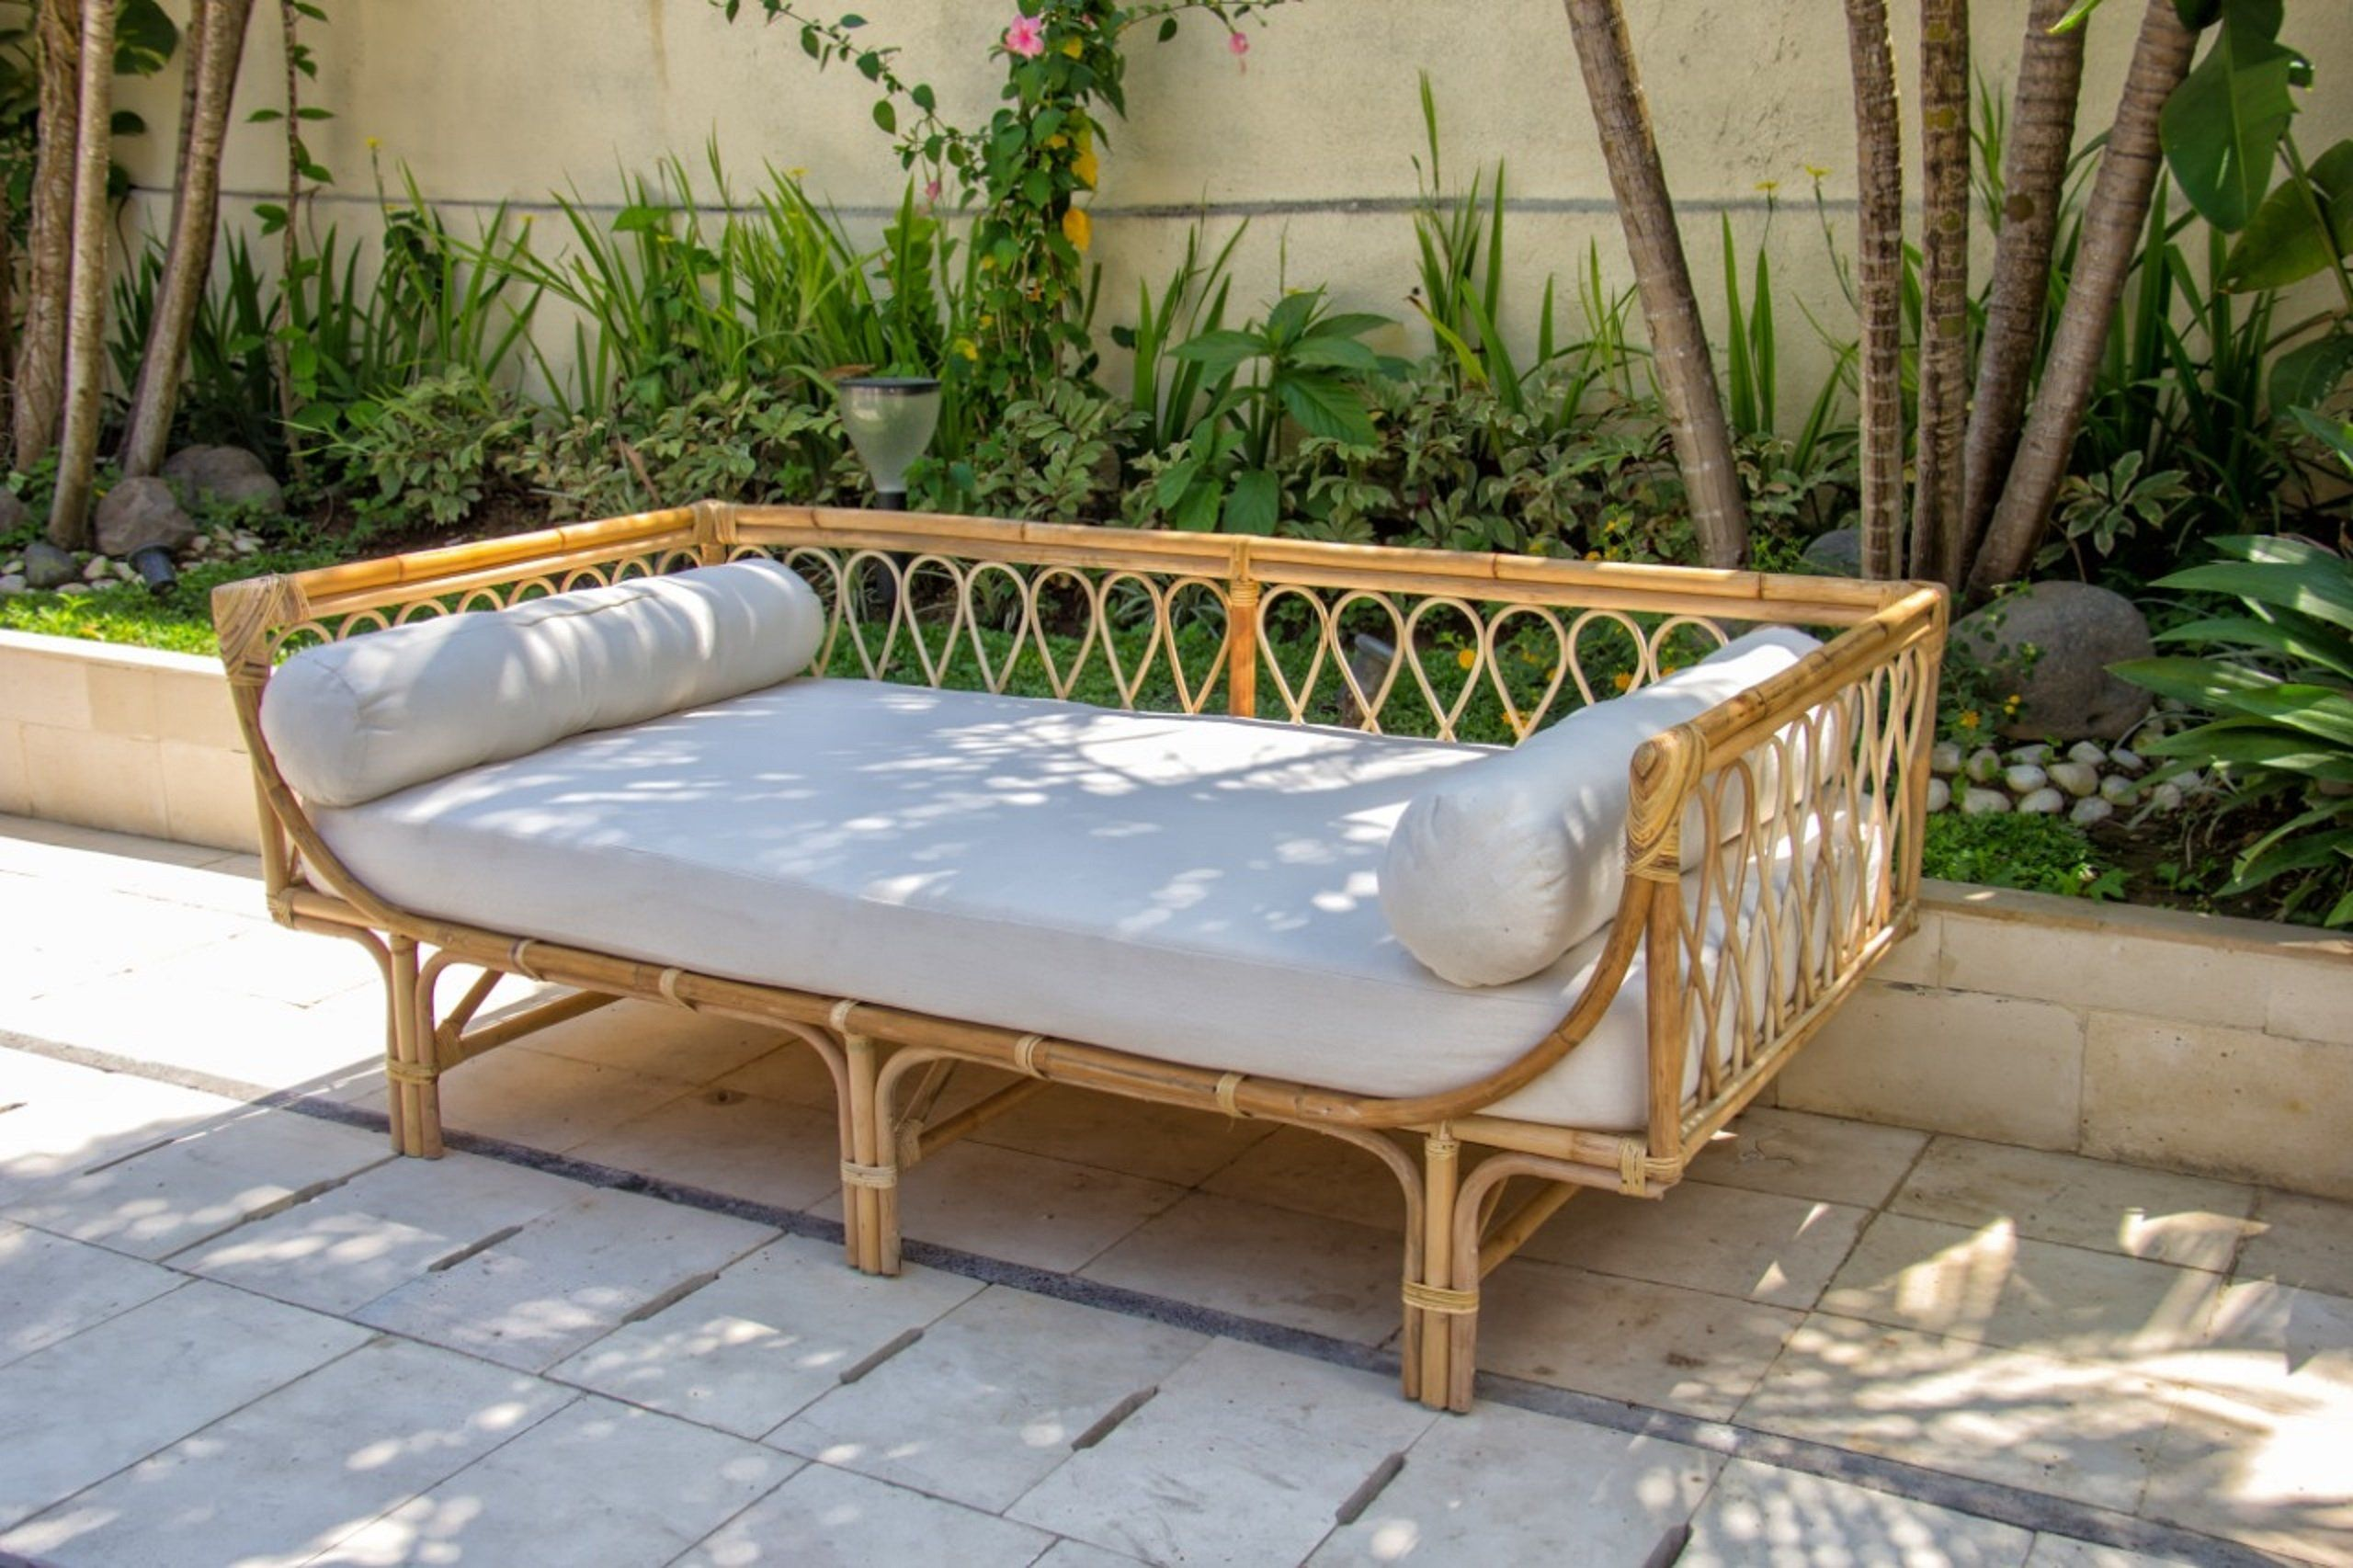 Rattan Tropisk DaybedDefault Title in 2020 Rattan daybed